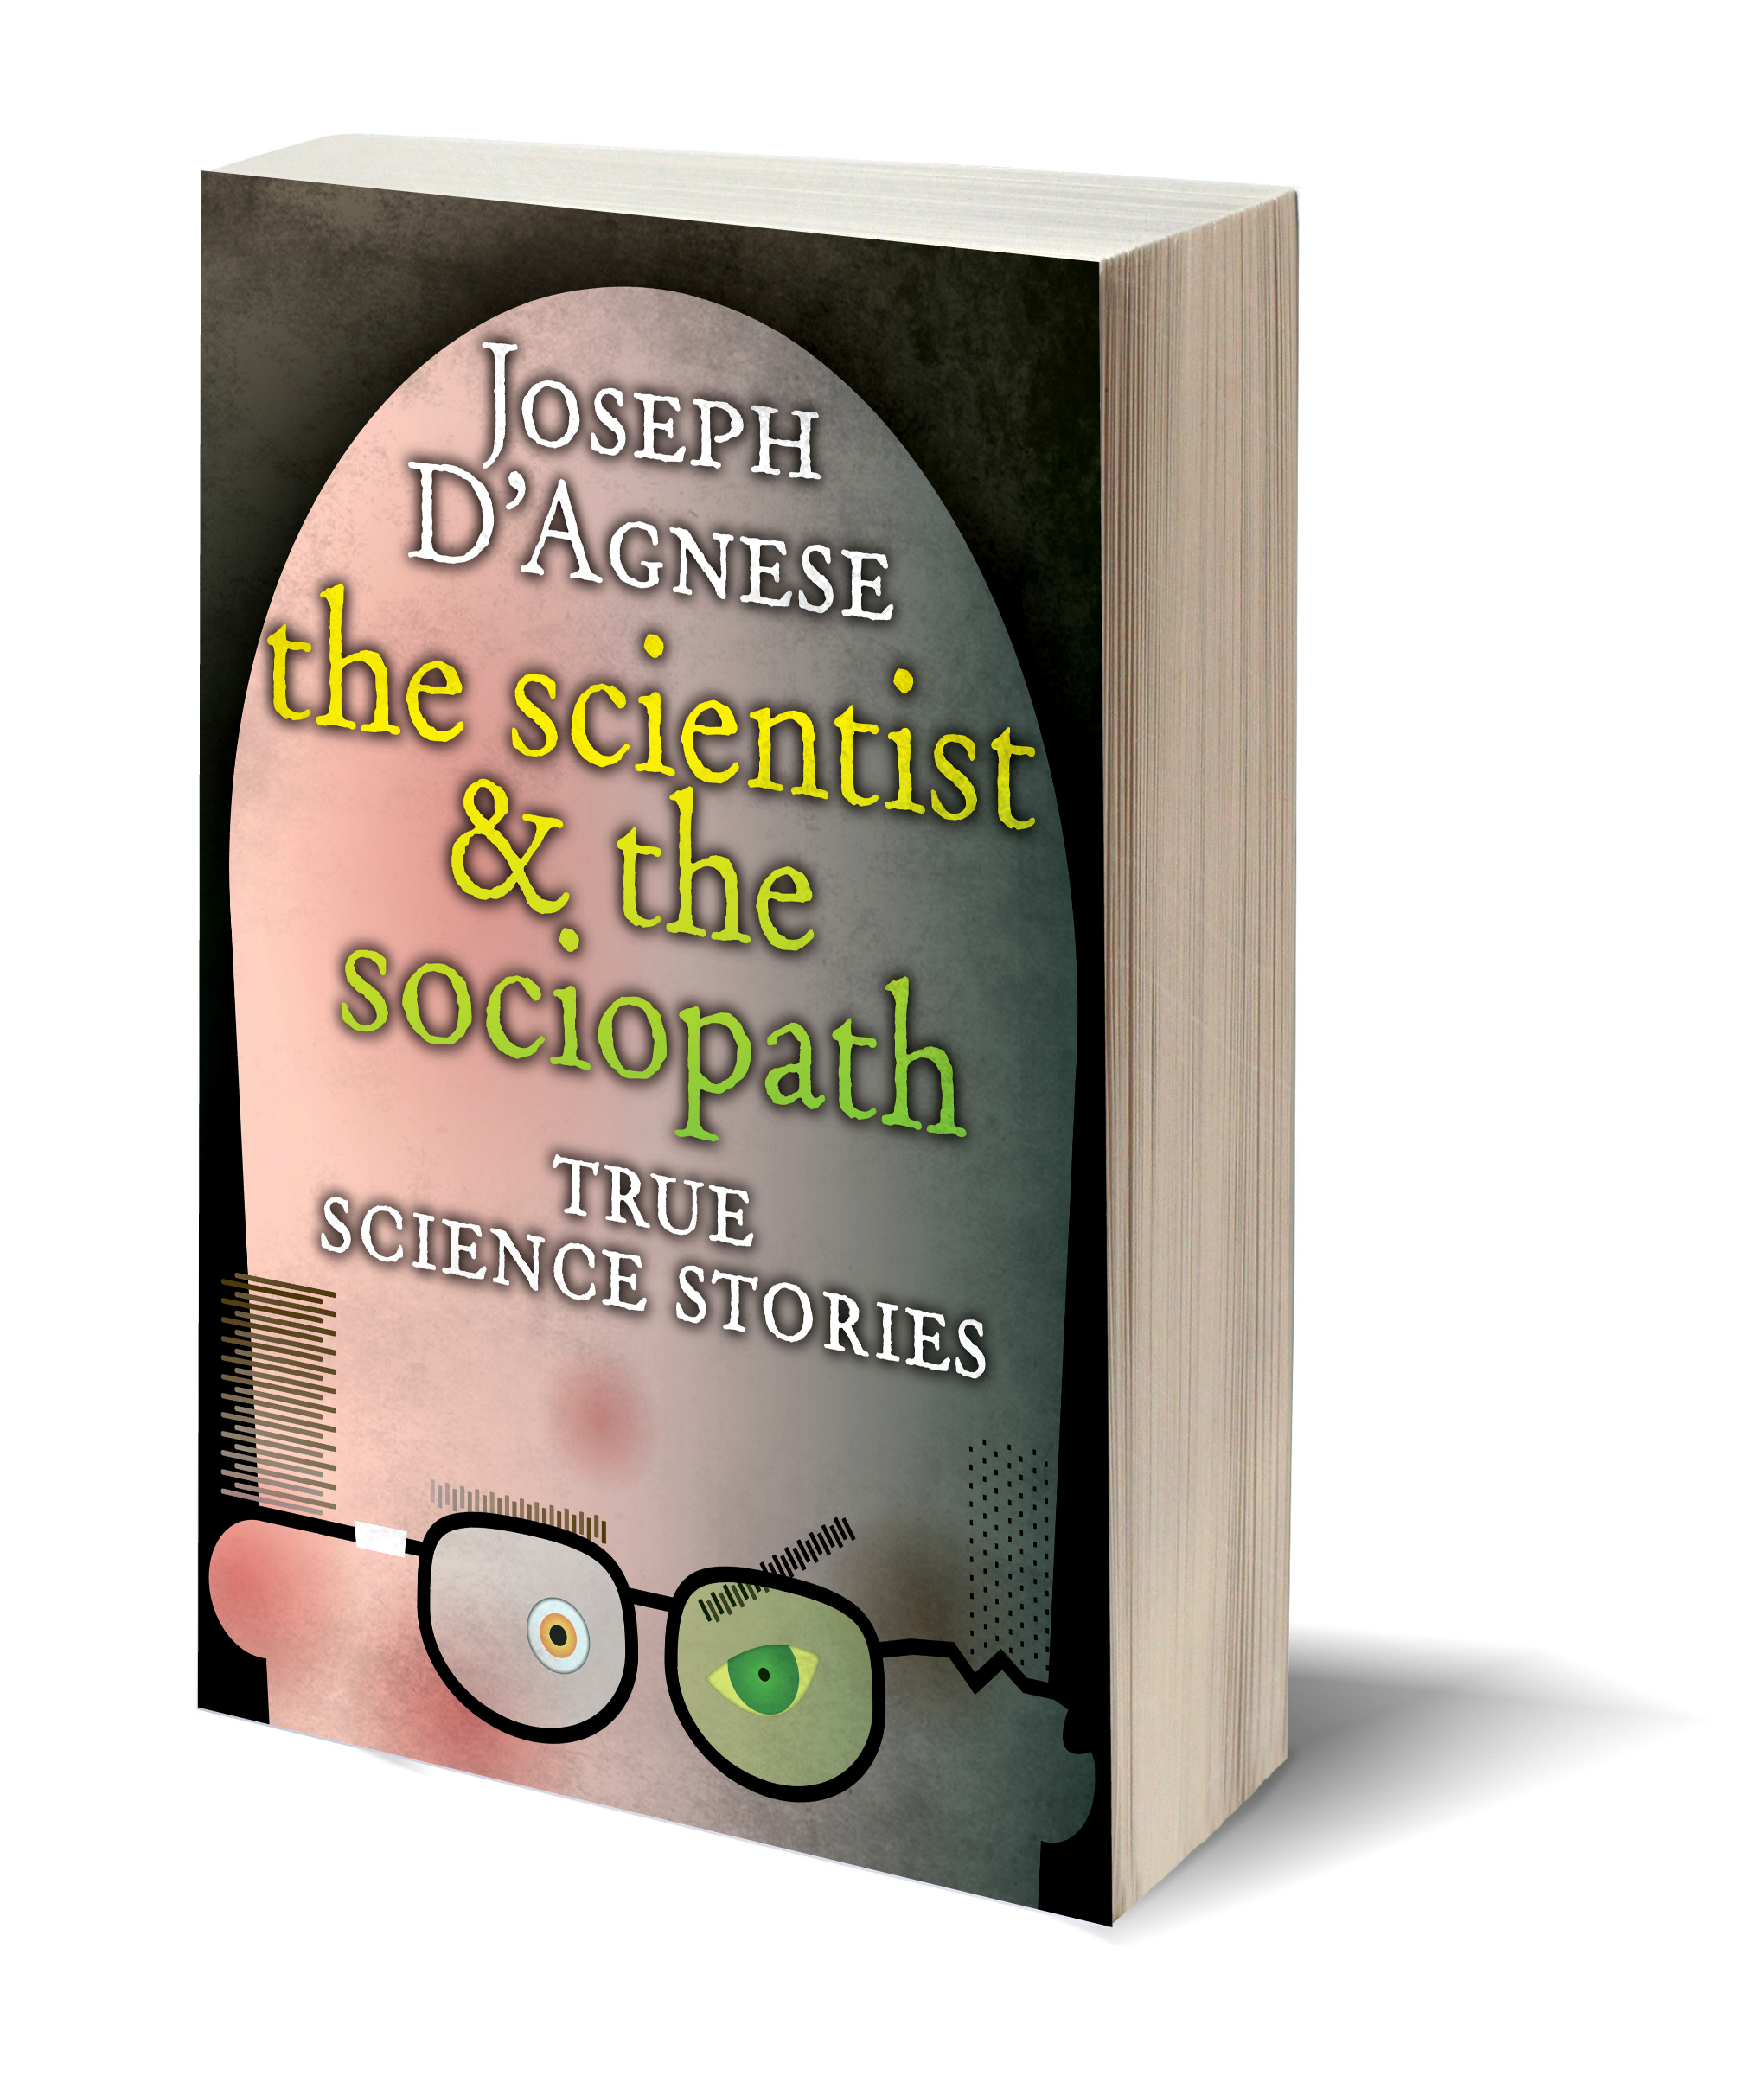 The Scientist and the Sociopath by Joseph D'Agnese